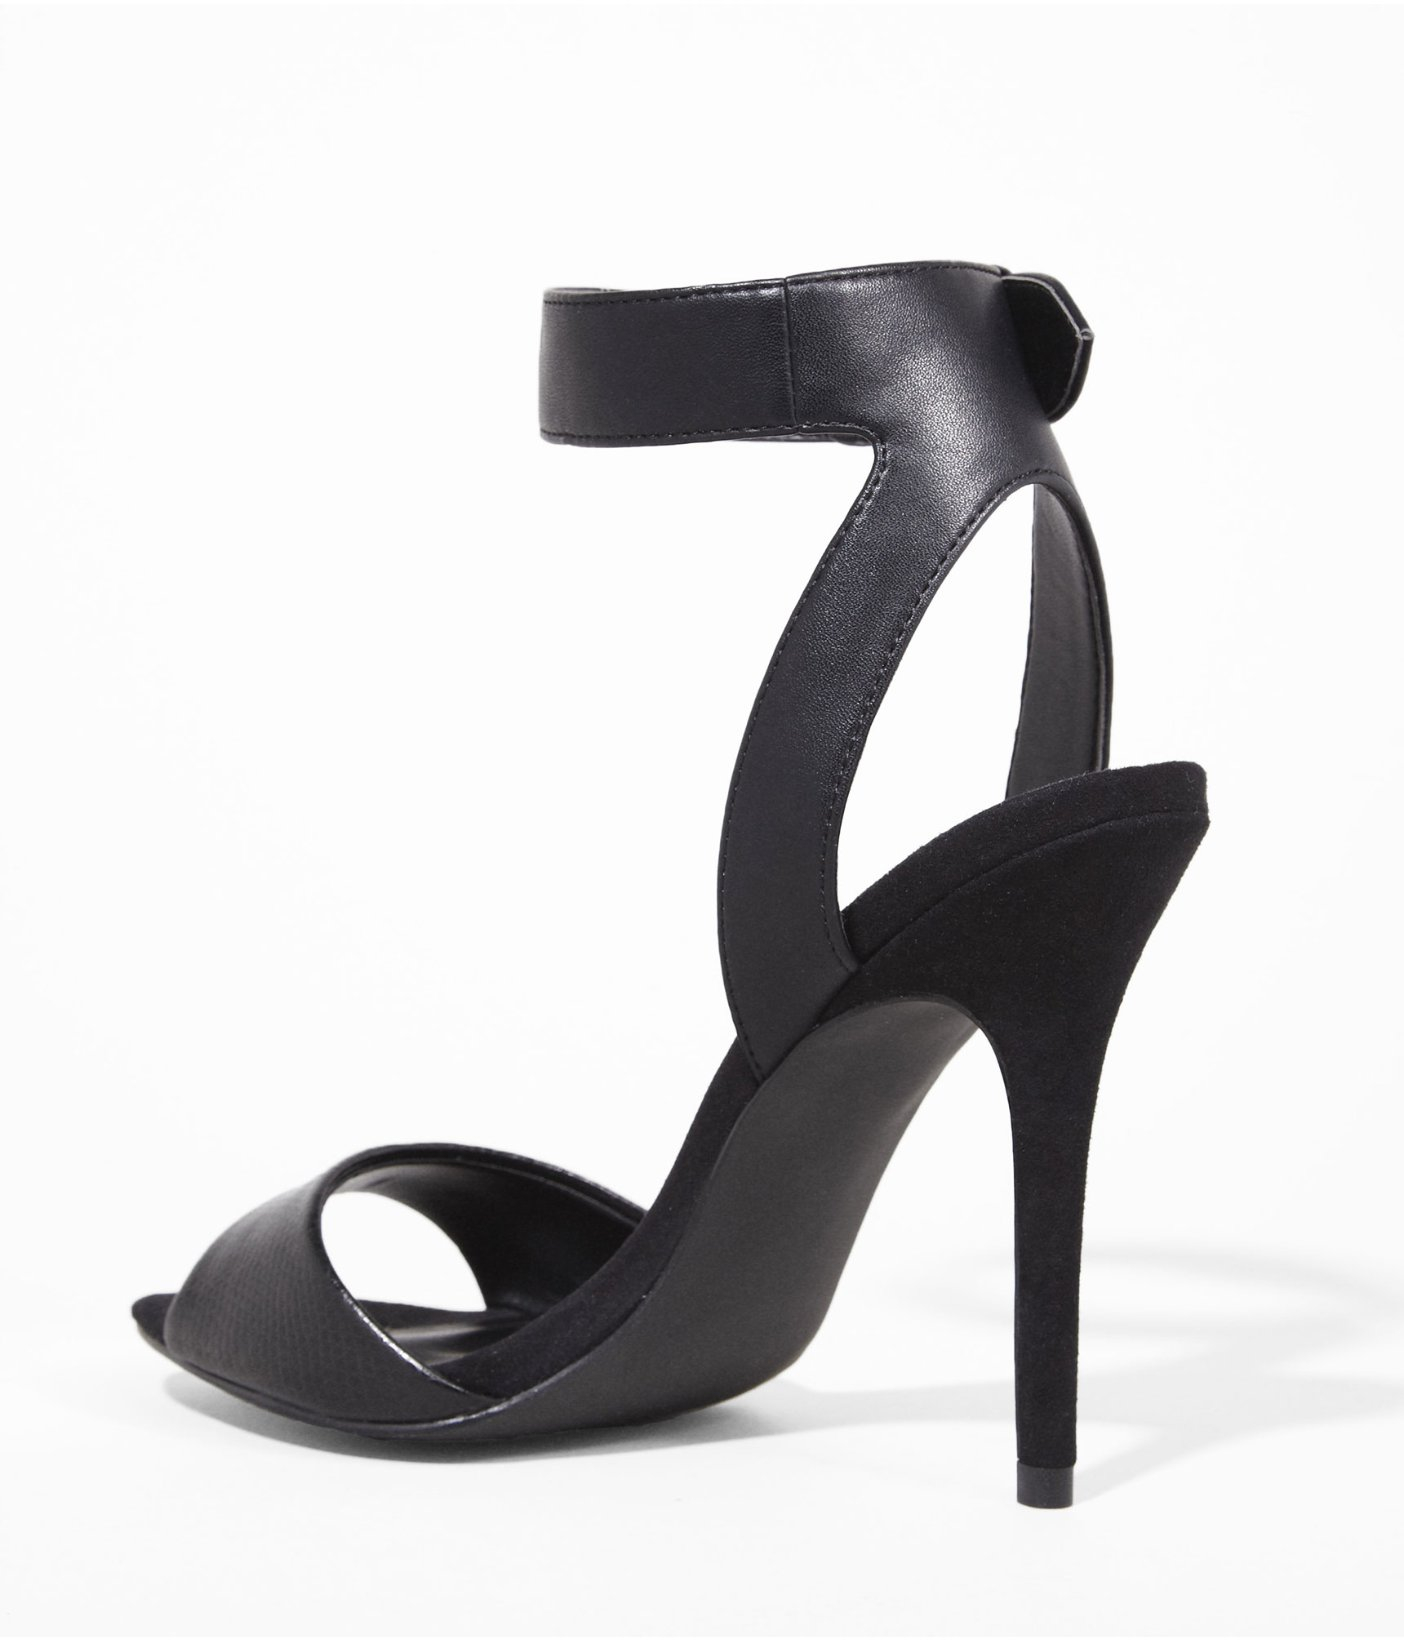 Express Wide Ankle Strap Heeled Runway Sandal in Black | Lyst